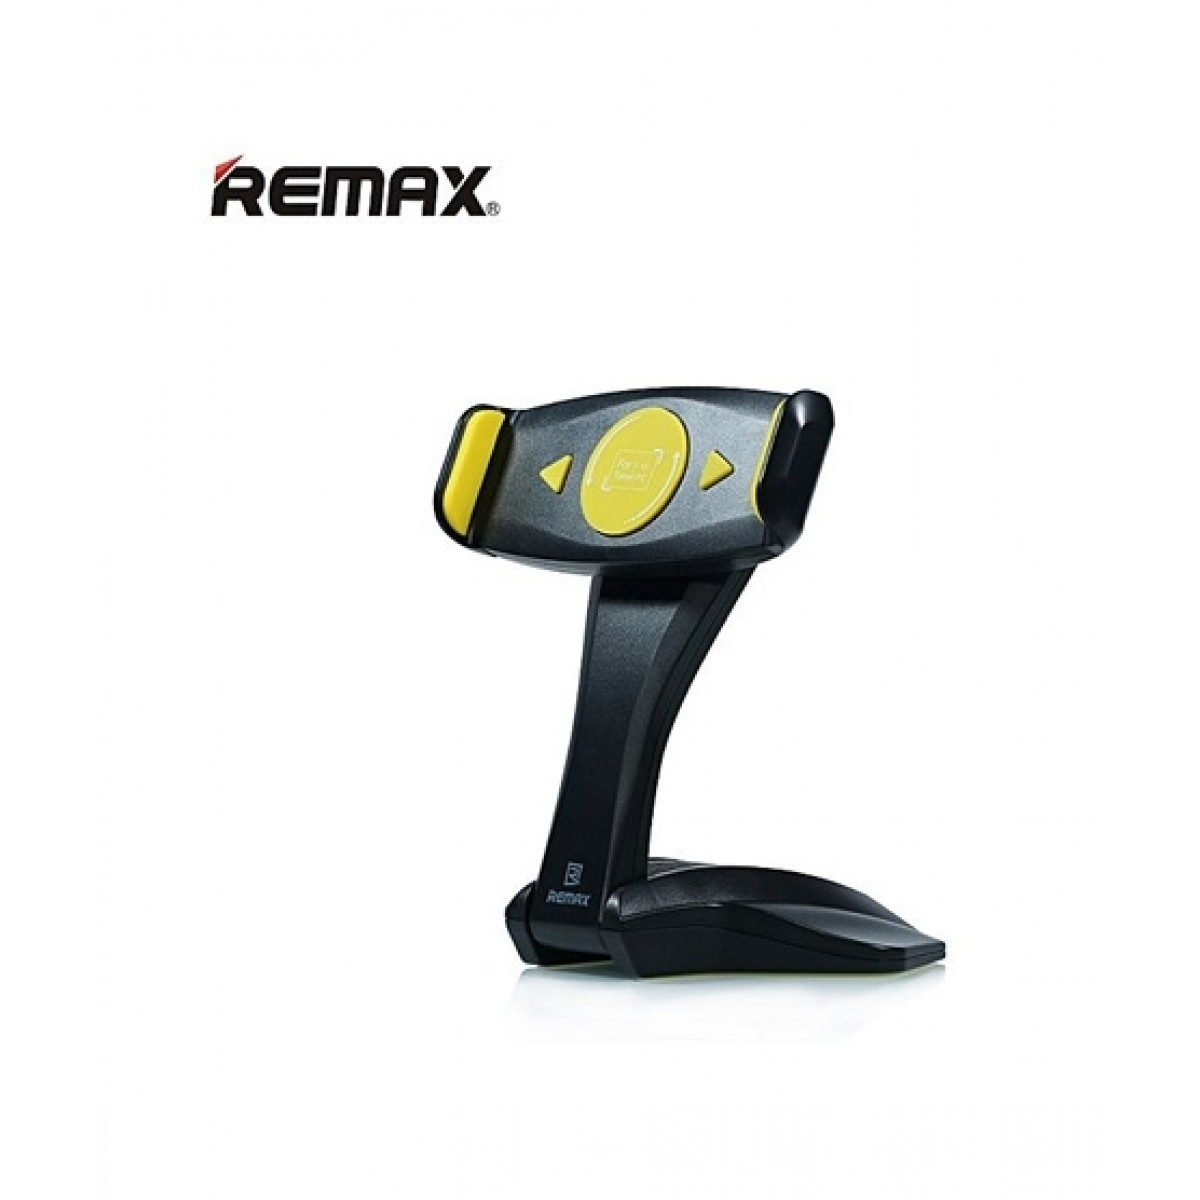 Remax 360 Degree Tablet Holder Black (RM-C16)